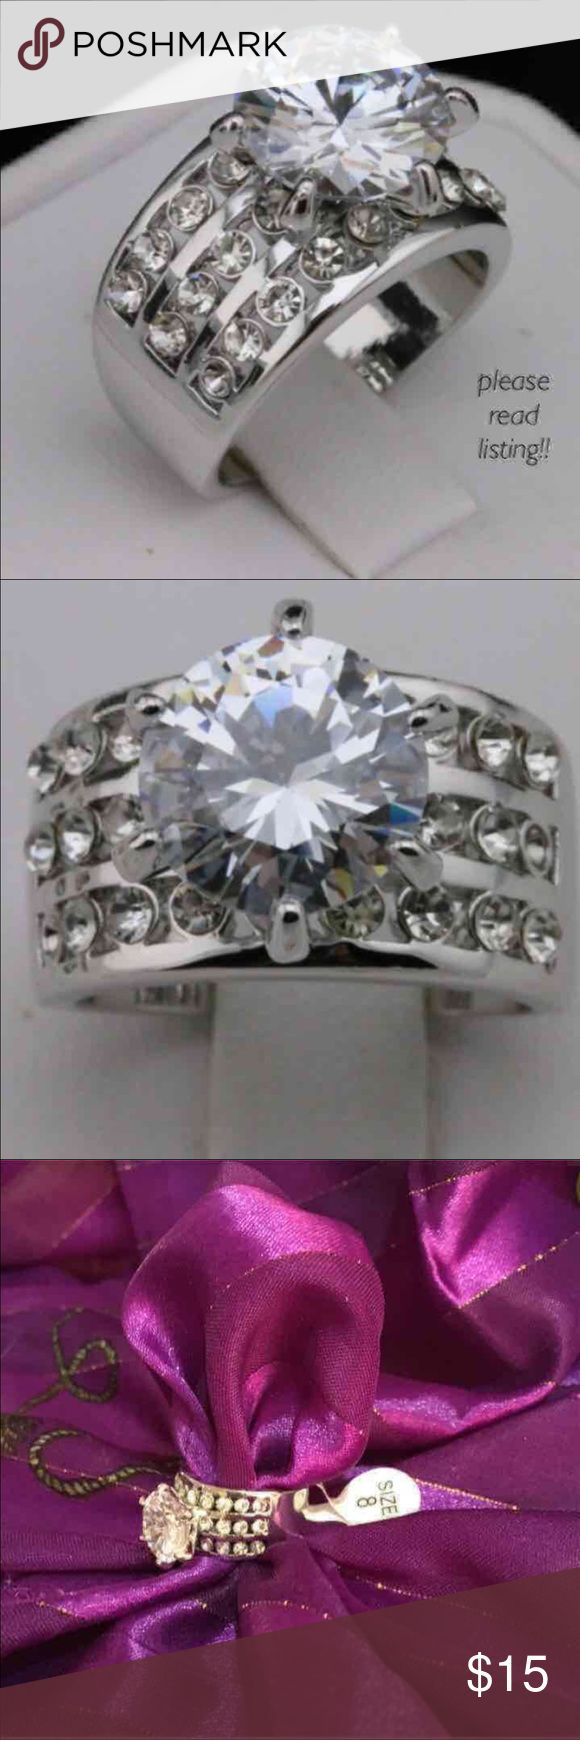 Large CZ Solitaire Fashion Ring Size 7 fashion jewelry 3 carat Solitaire white gold plated ring. Never worn. Jewelry Rings